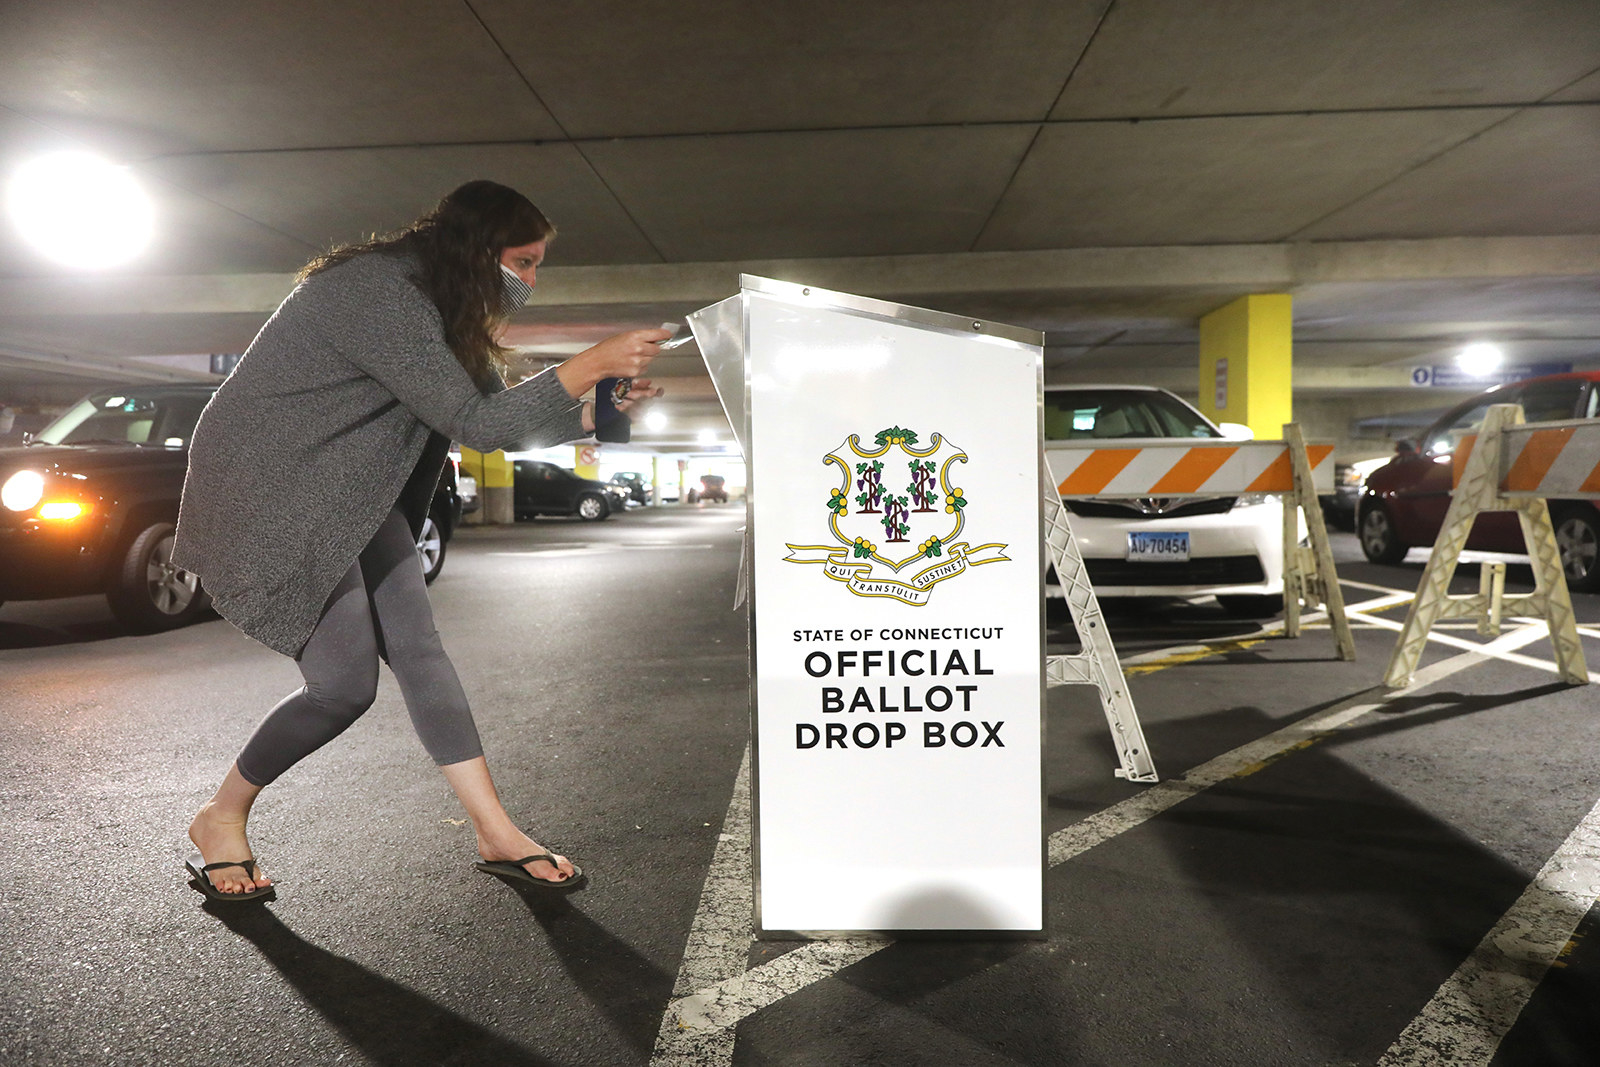 A voter drops off a ballot in a ballot drop box in a parking garage